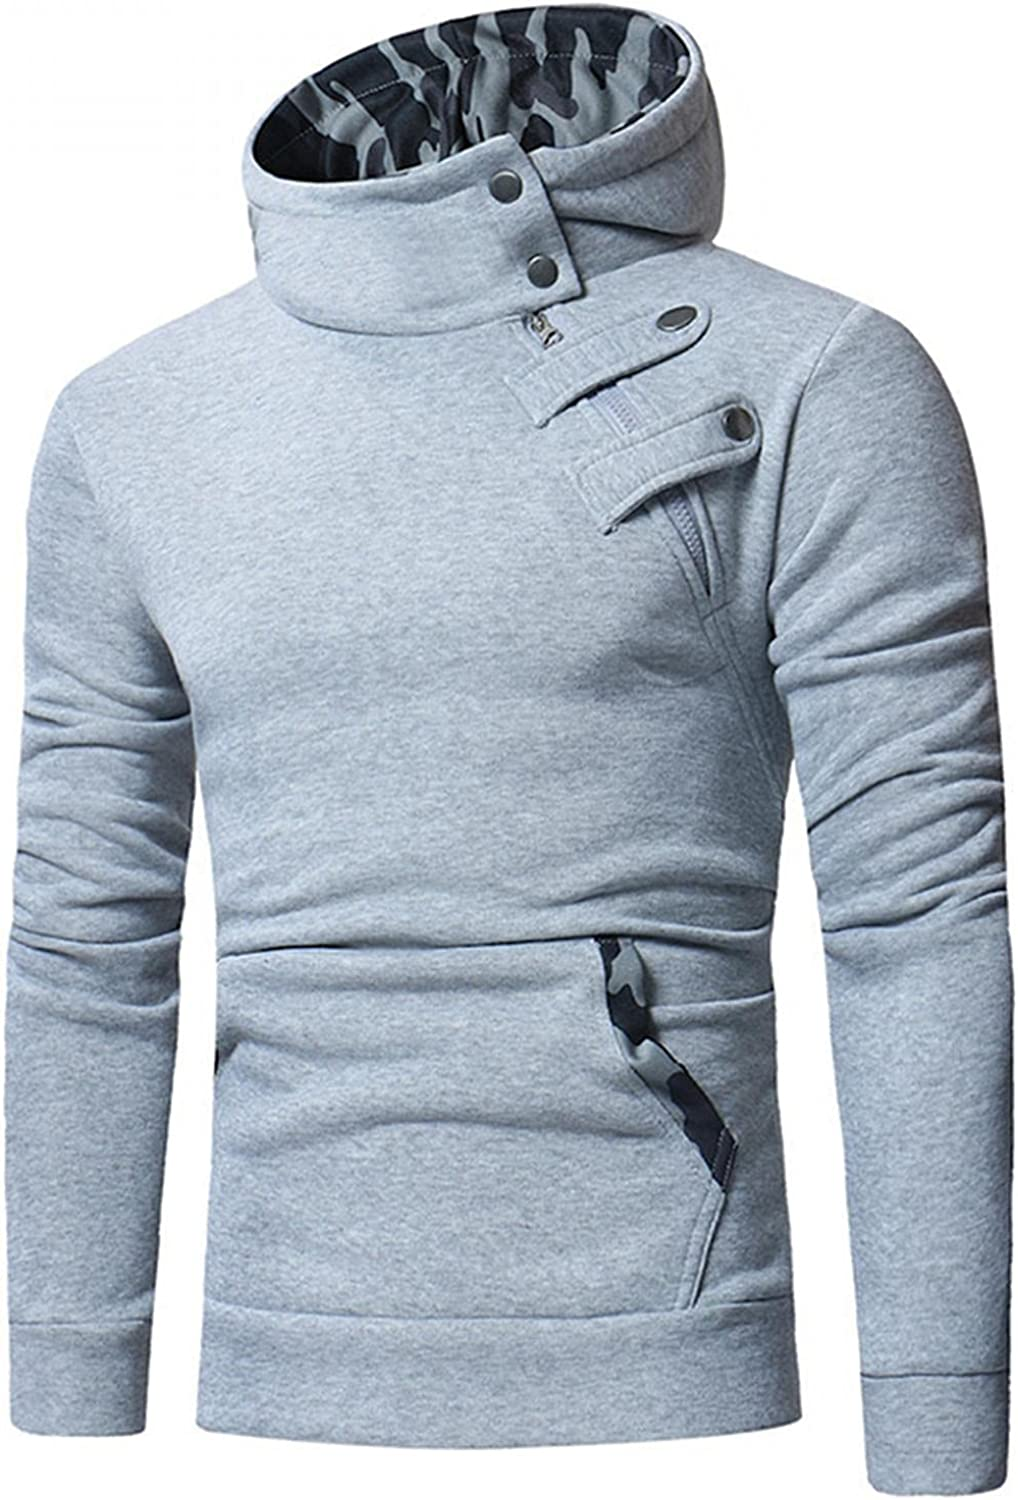 Aayomet Hoodies Sweatshirts for Men Solid Tops Long Sleeve Athletic Workout Hooded Pullover Blouses Sweaters with Pocket